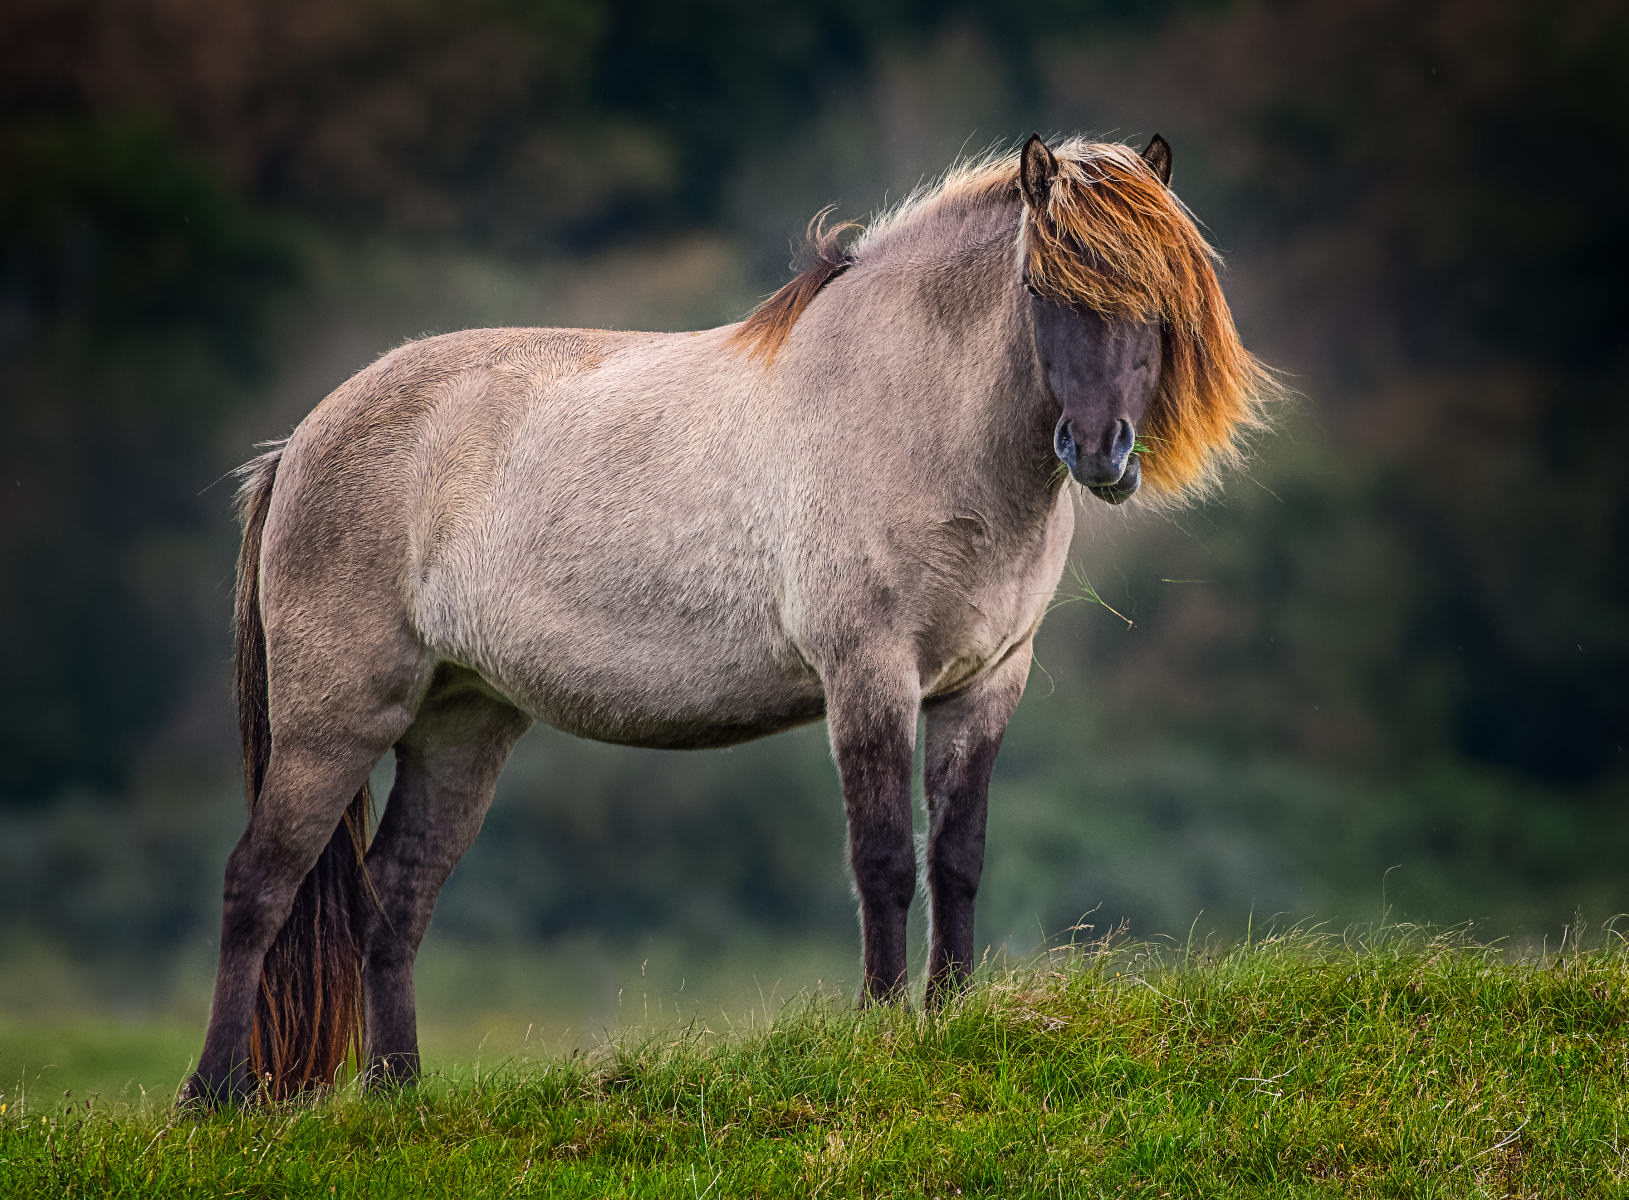 pale horse with golden mane and peek-a-boo forelock